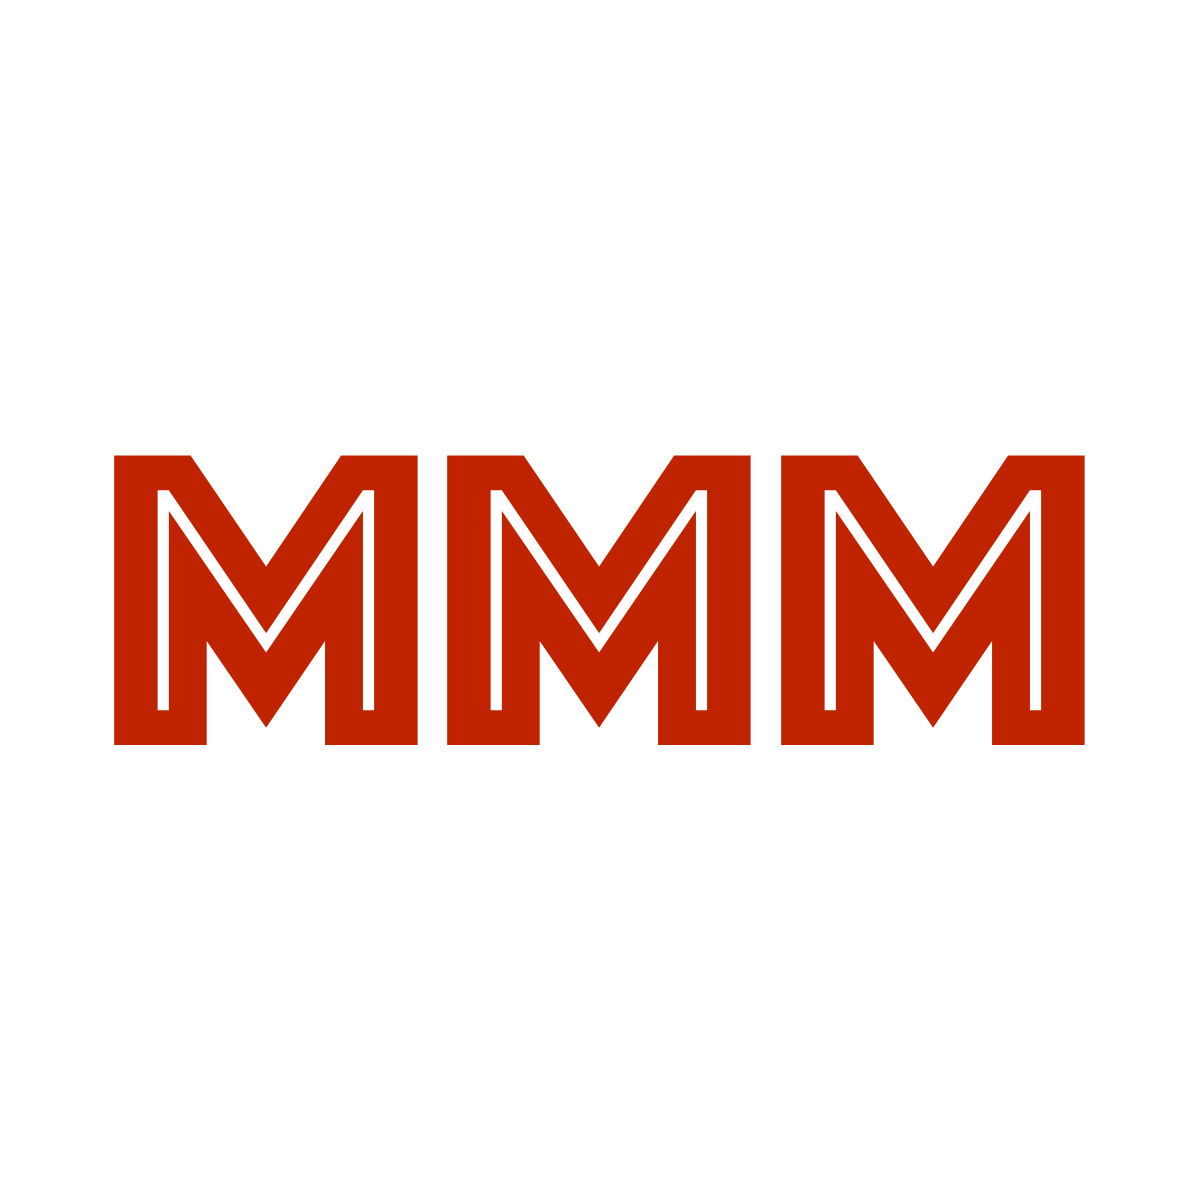 Midtown Miami Magazine is one of the many prominent media outlets and publications that has featured the BizHack digital marketing school for communications and sales professionals and business owners